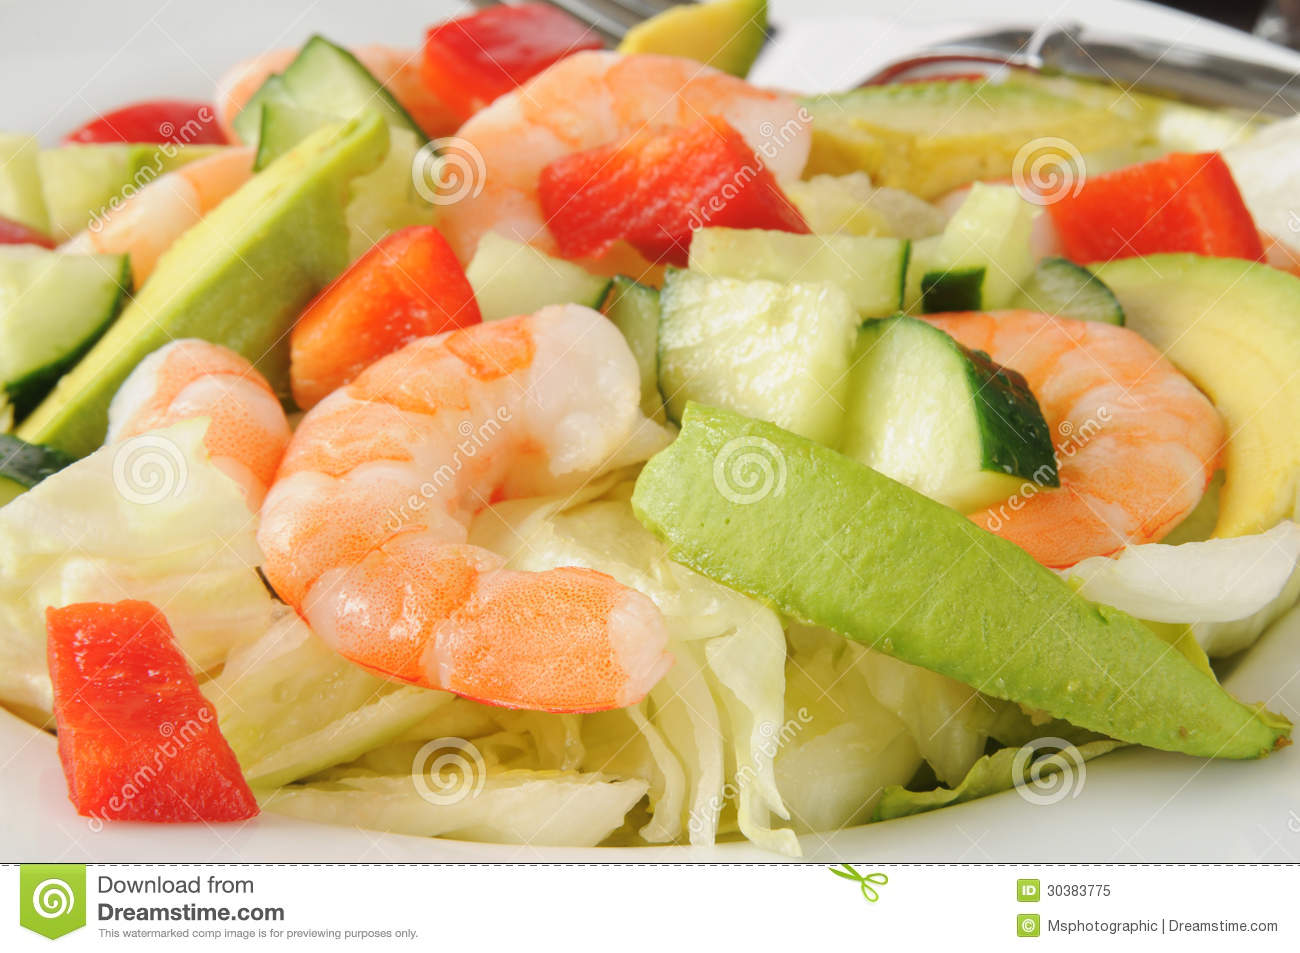 Shrimp And Avocado Salad Royalty Free Stock Photo - Image: 30383775